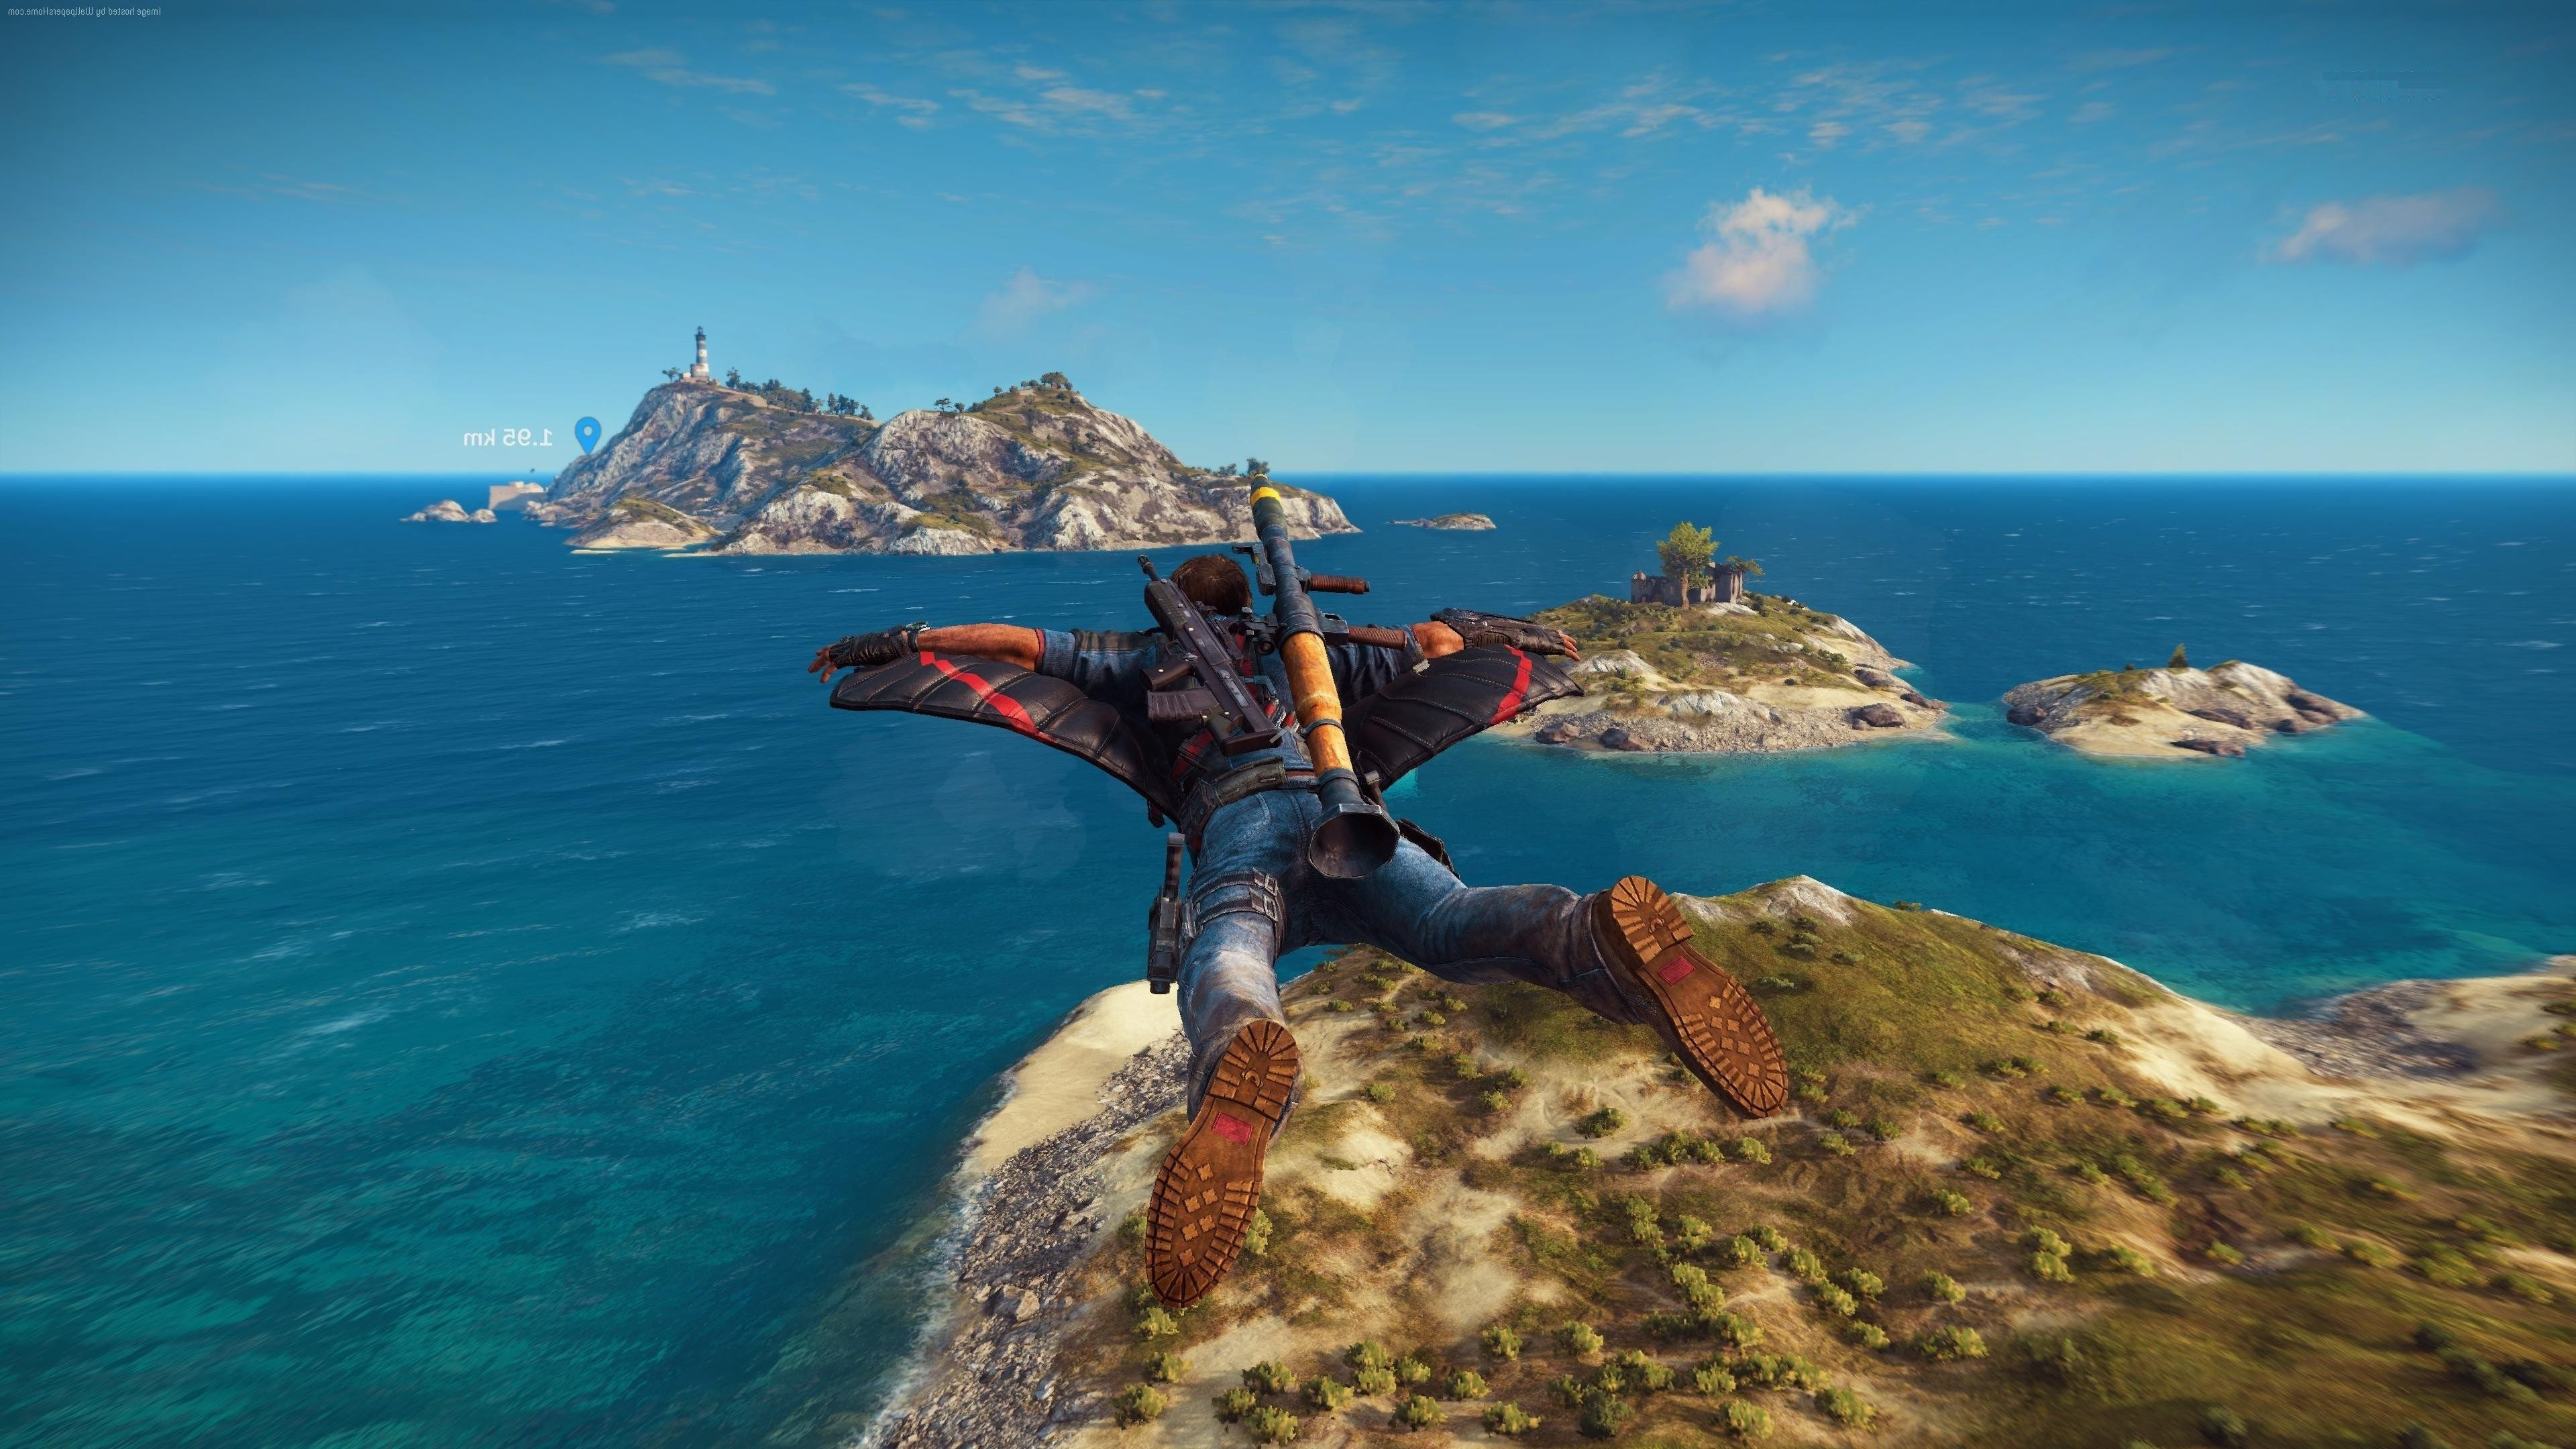 3840x2160 Just Cause 3 4k Awesome Wallpaper Hd Just Cause 3 Widescreen Wallpaper Gameplay